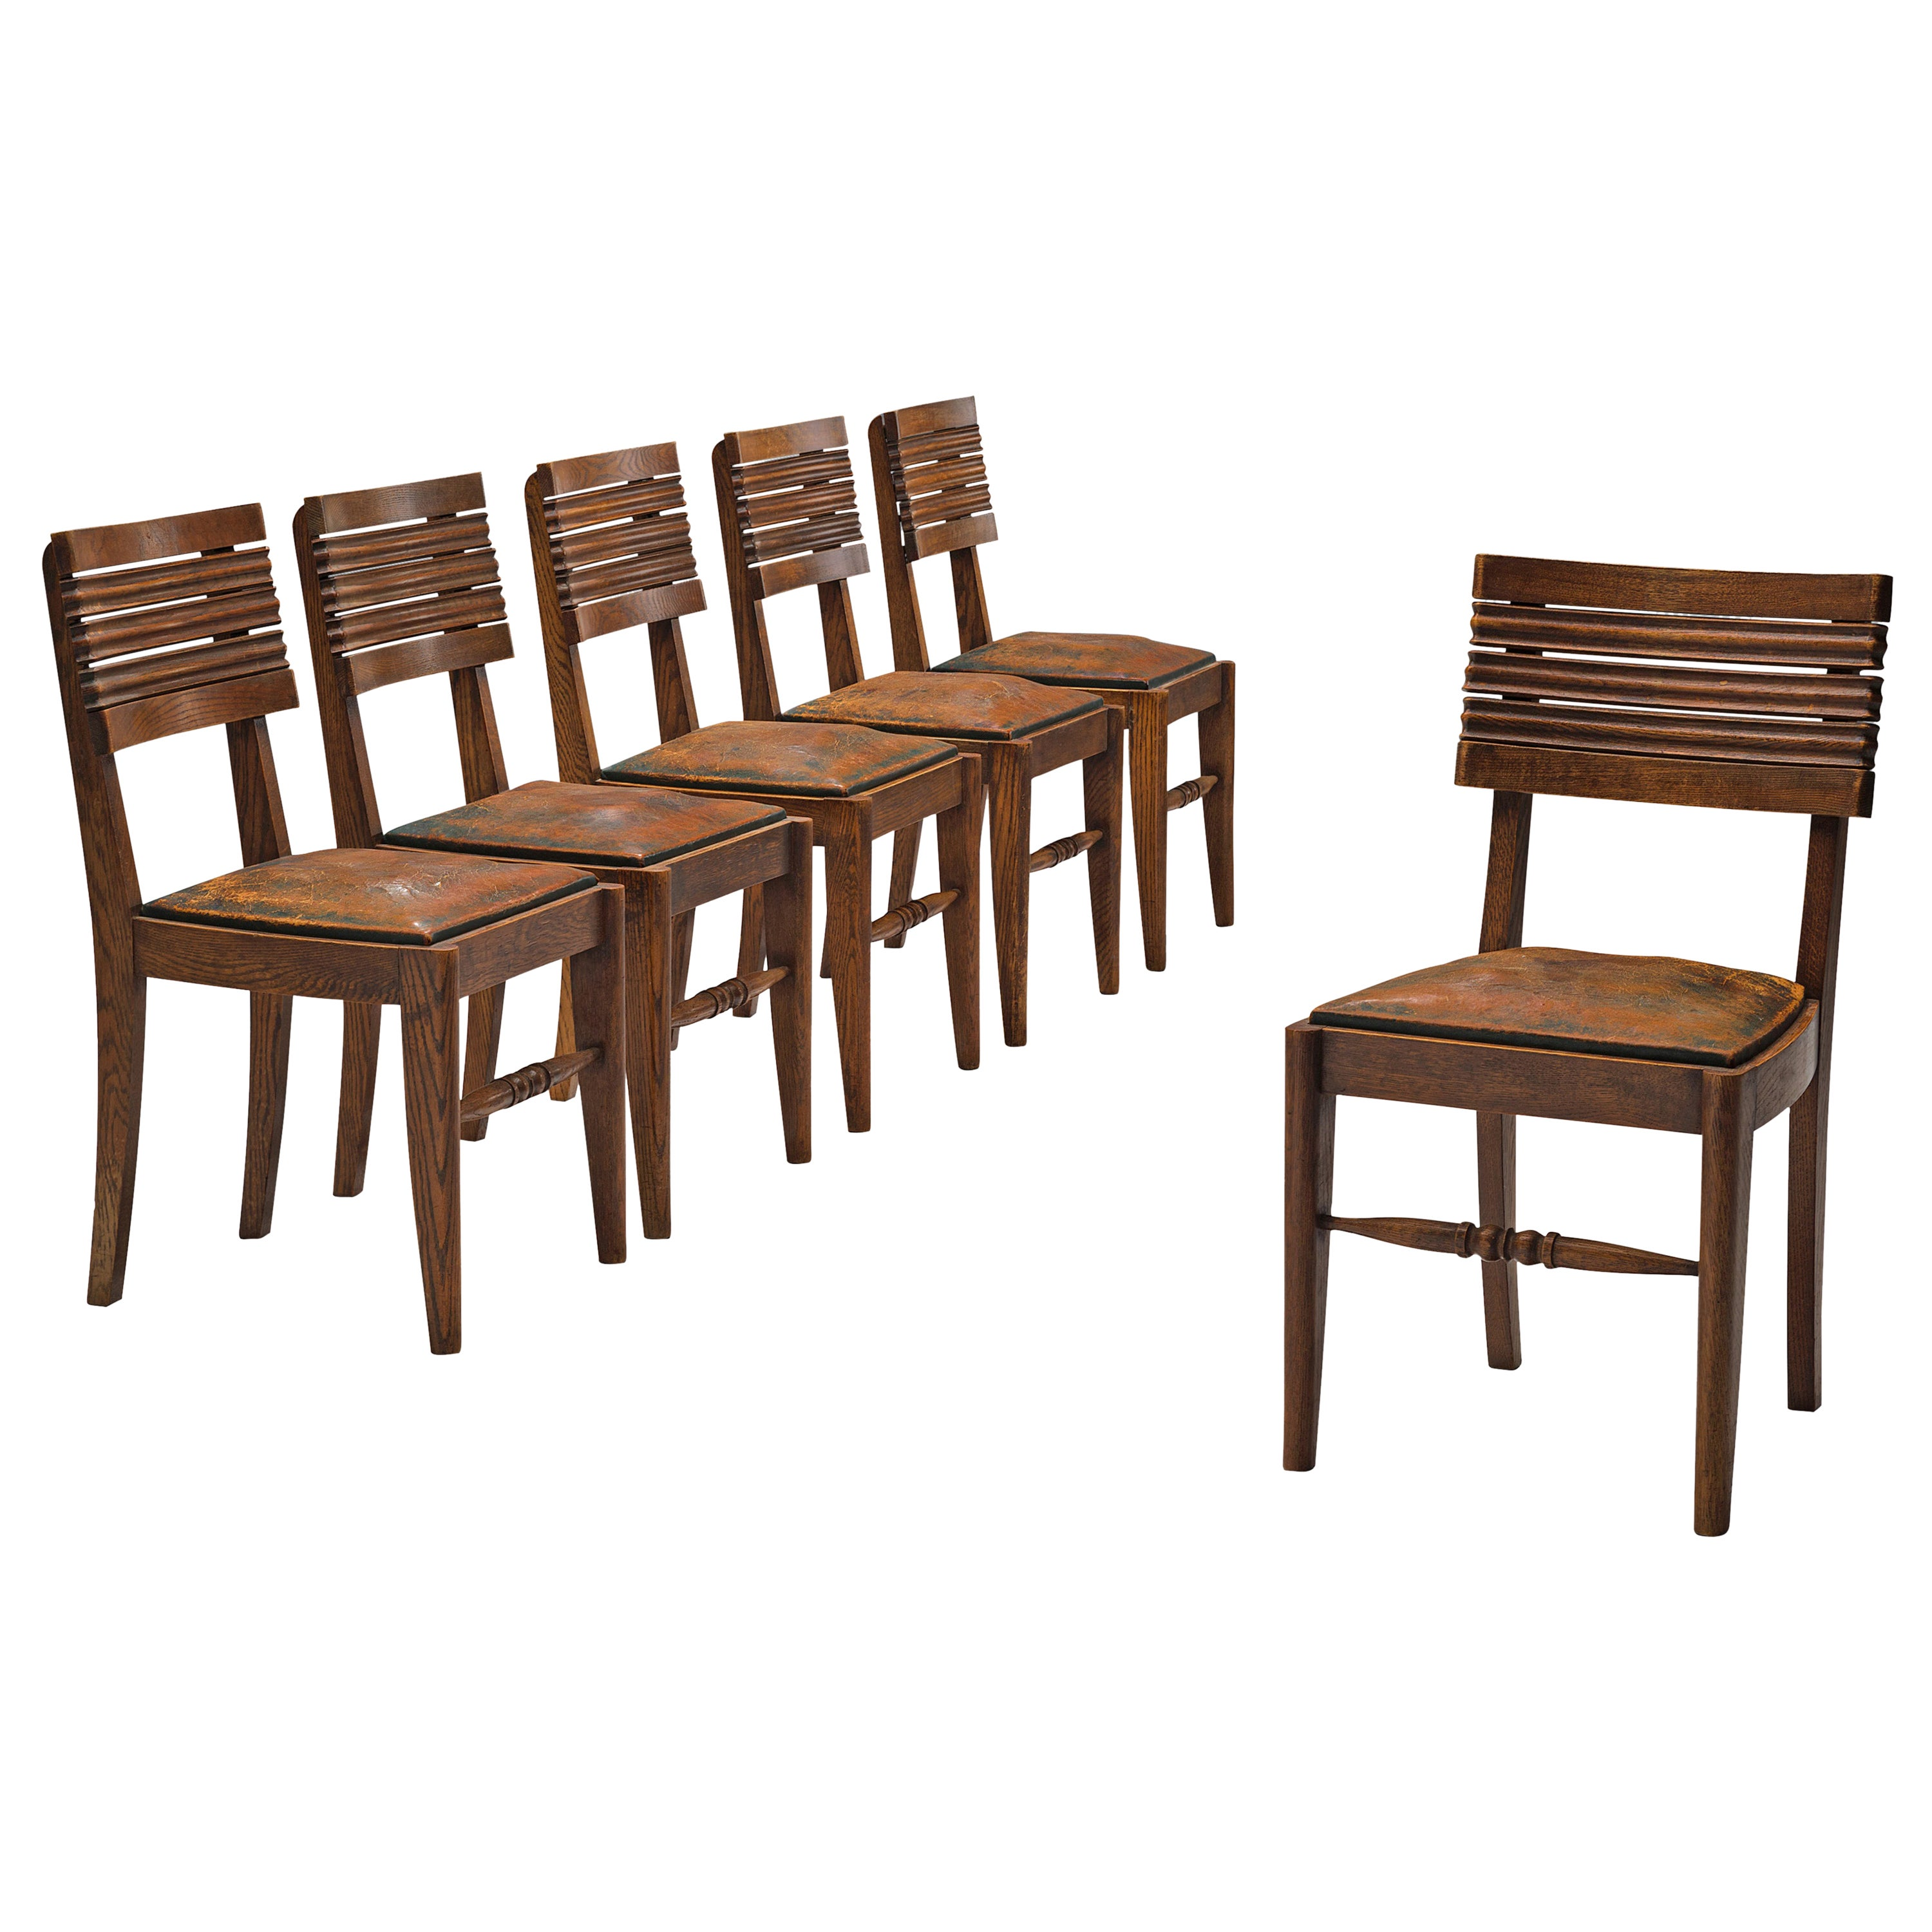 Gaston Poisson Set of Six Dining Chairs in Oak and Leather